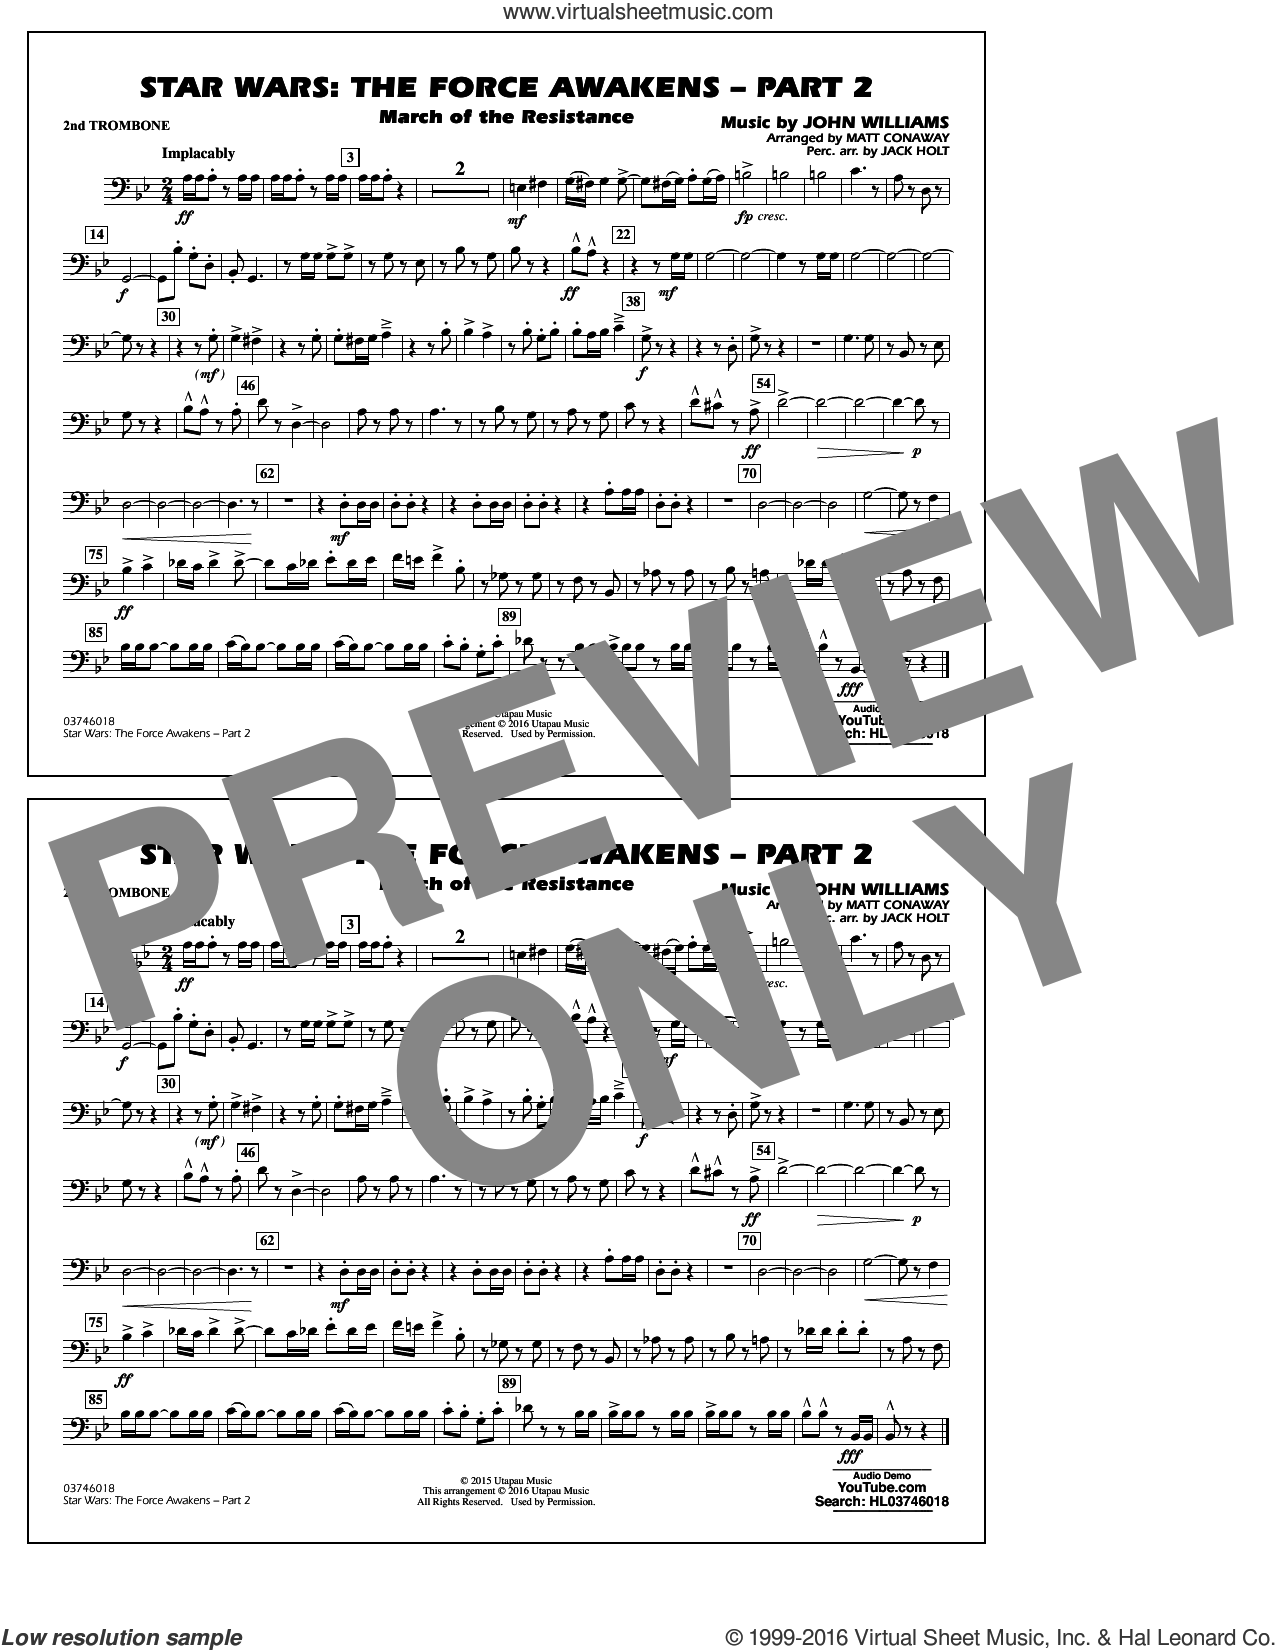 Star Wars: The Force Awakens, part 2 sheet music for marching band (2nd trombone) by John Williams and Matt Conaway, classical score, intermediate skill level